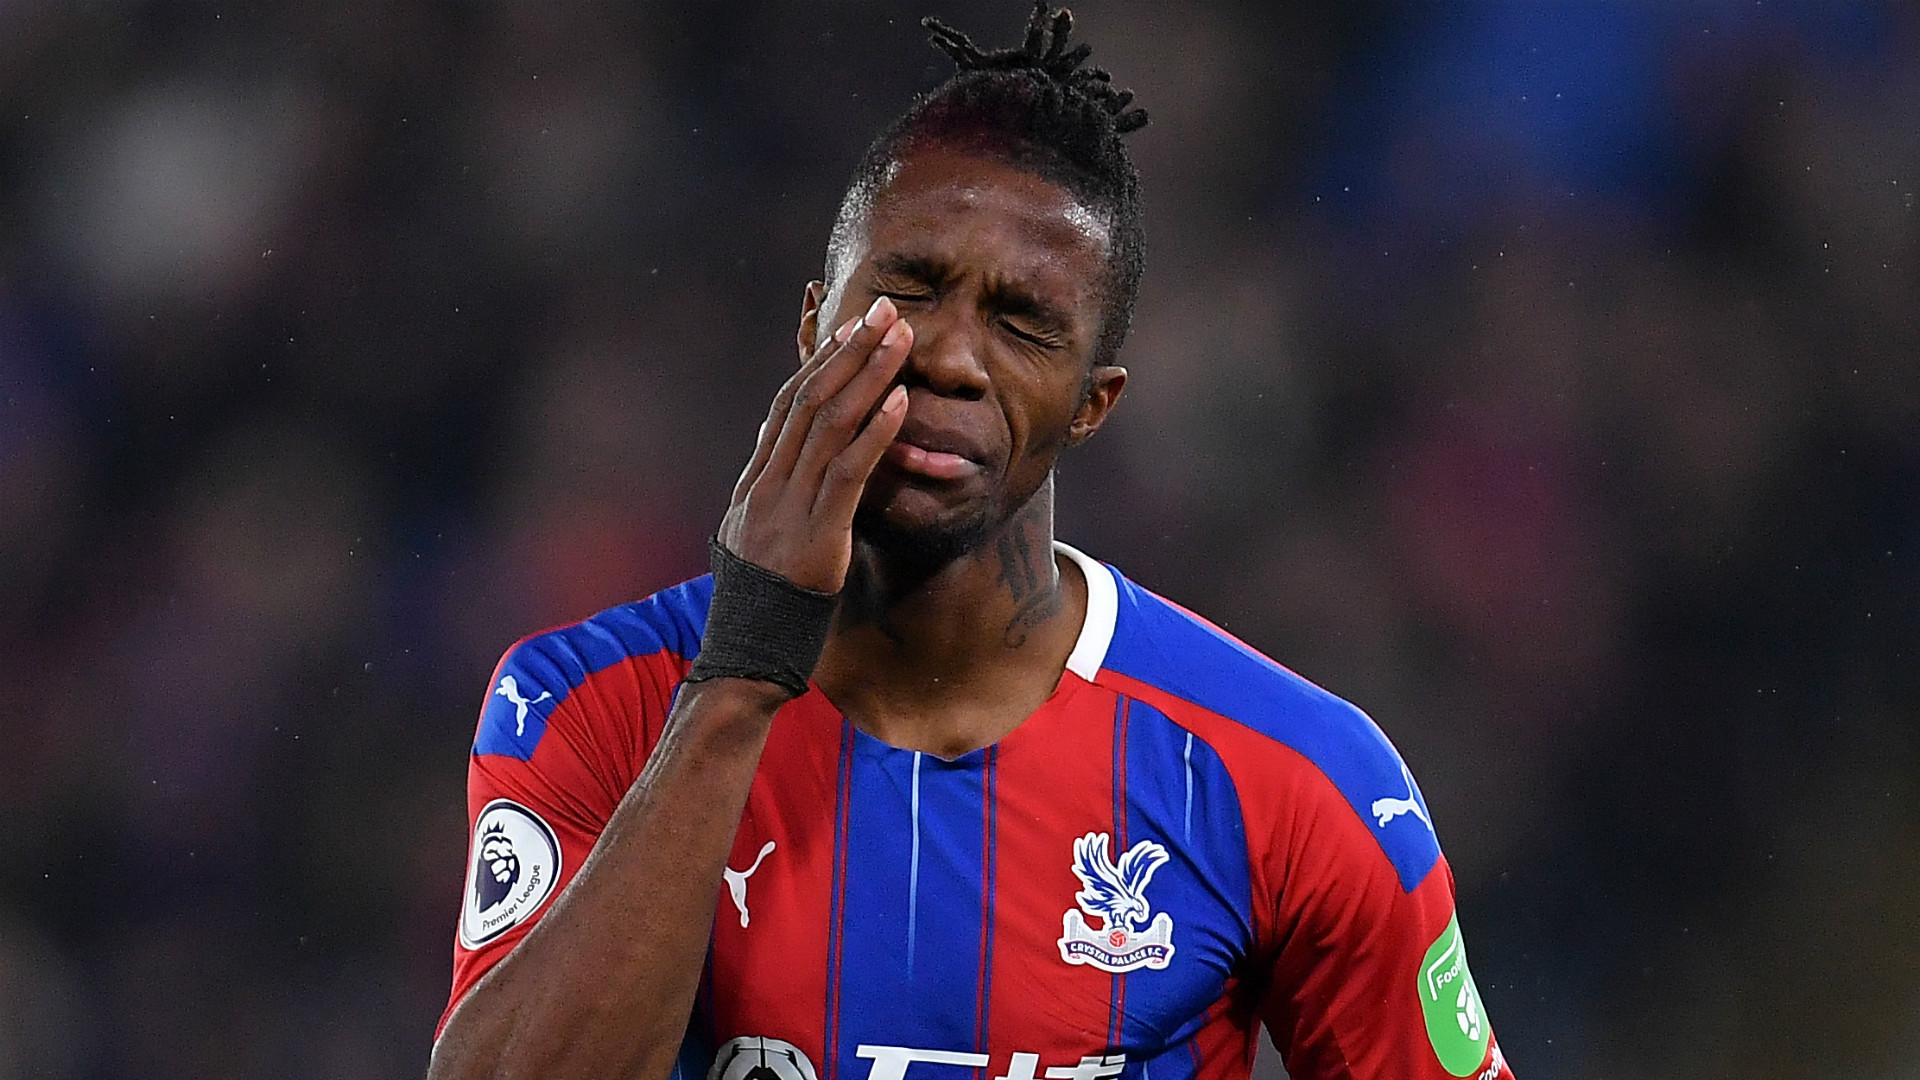 Transfer news and rumours LIVE: Spurs and Chelsea refuse to match £80m Zaha valuation